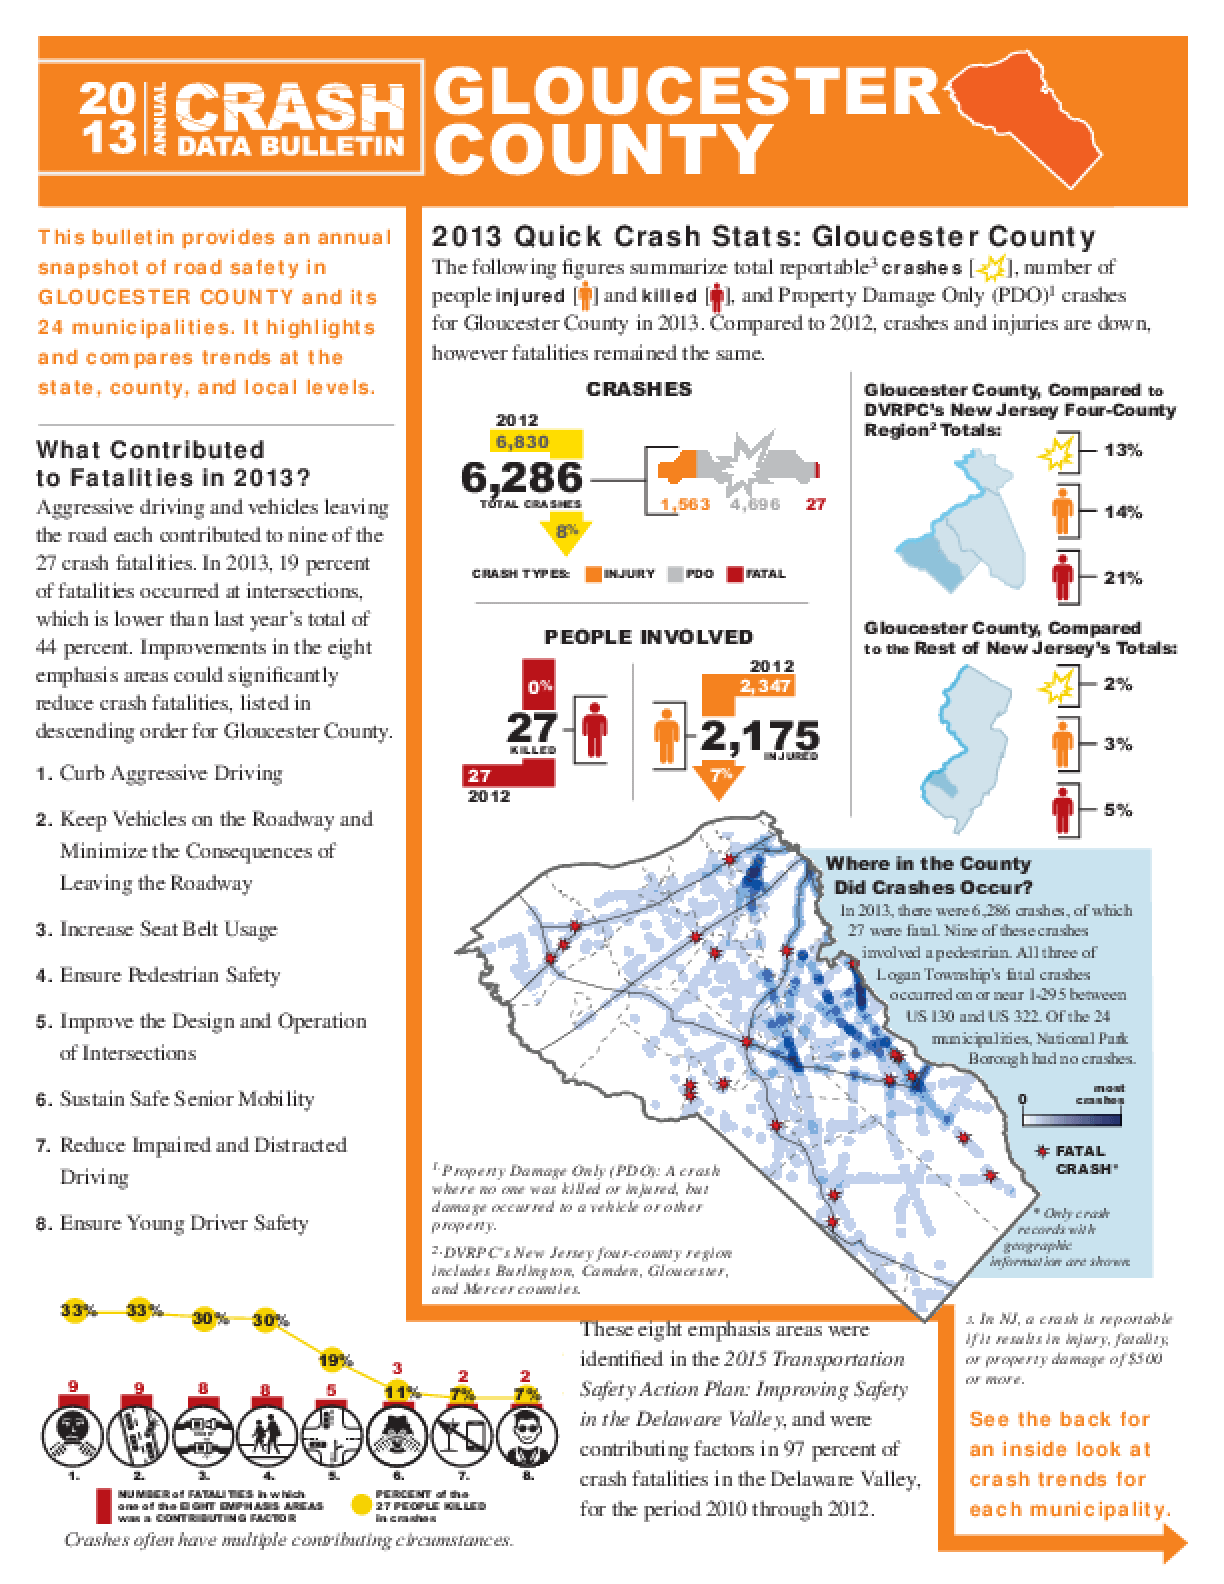 2013 Crash Data Bulletin - Gloucester County